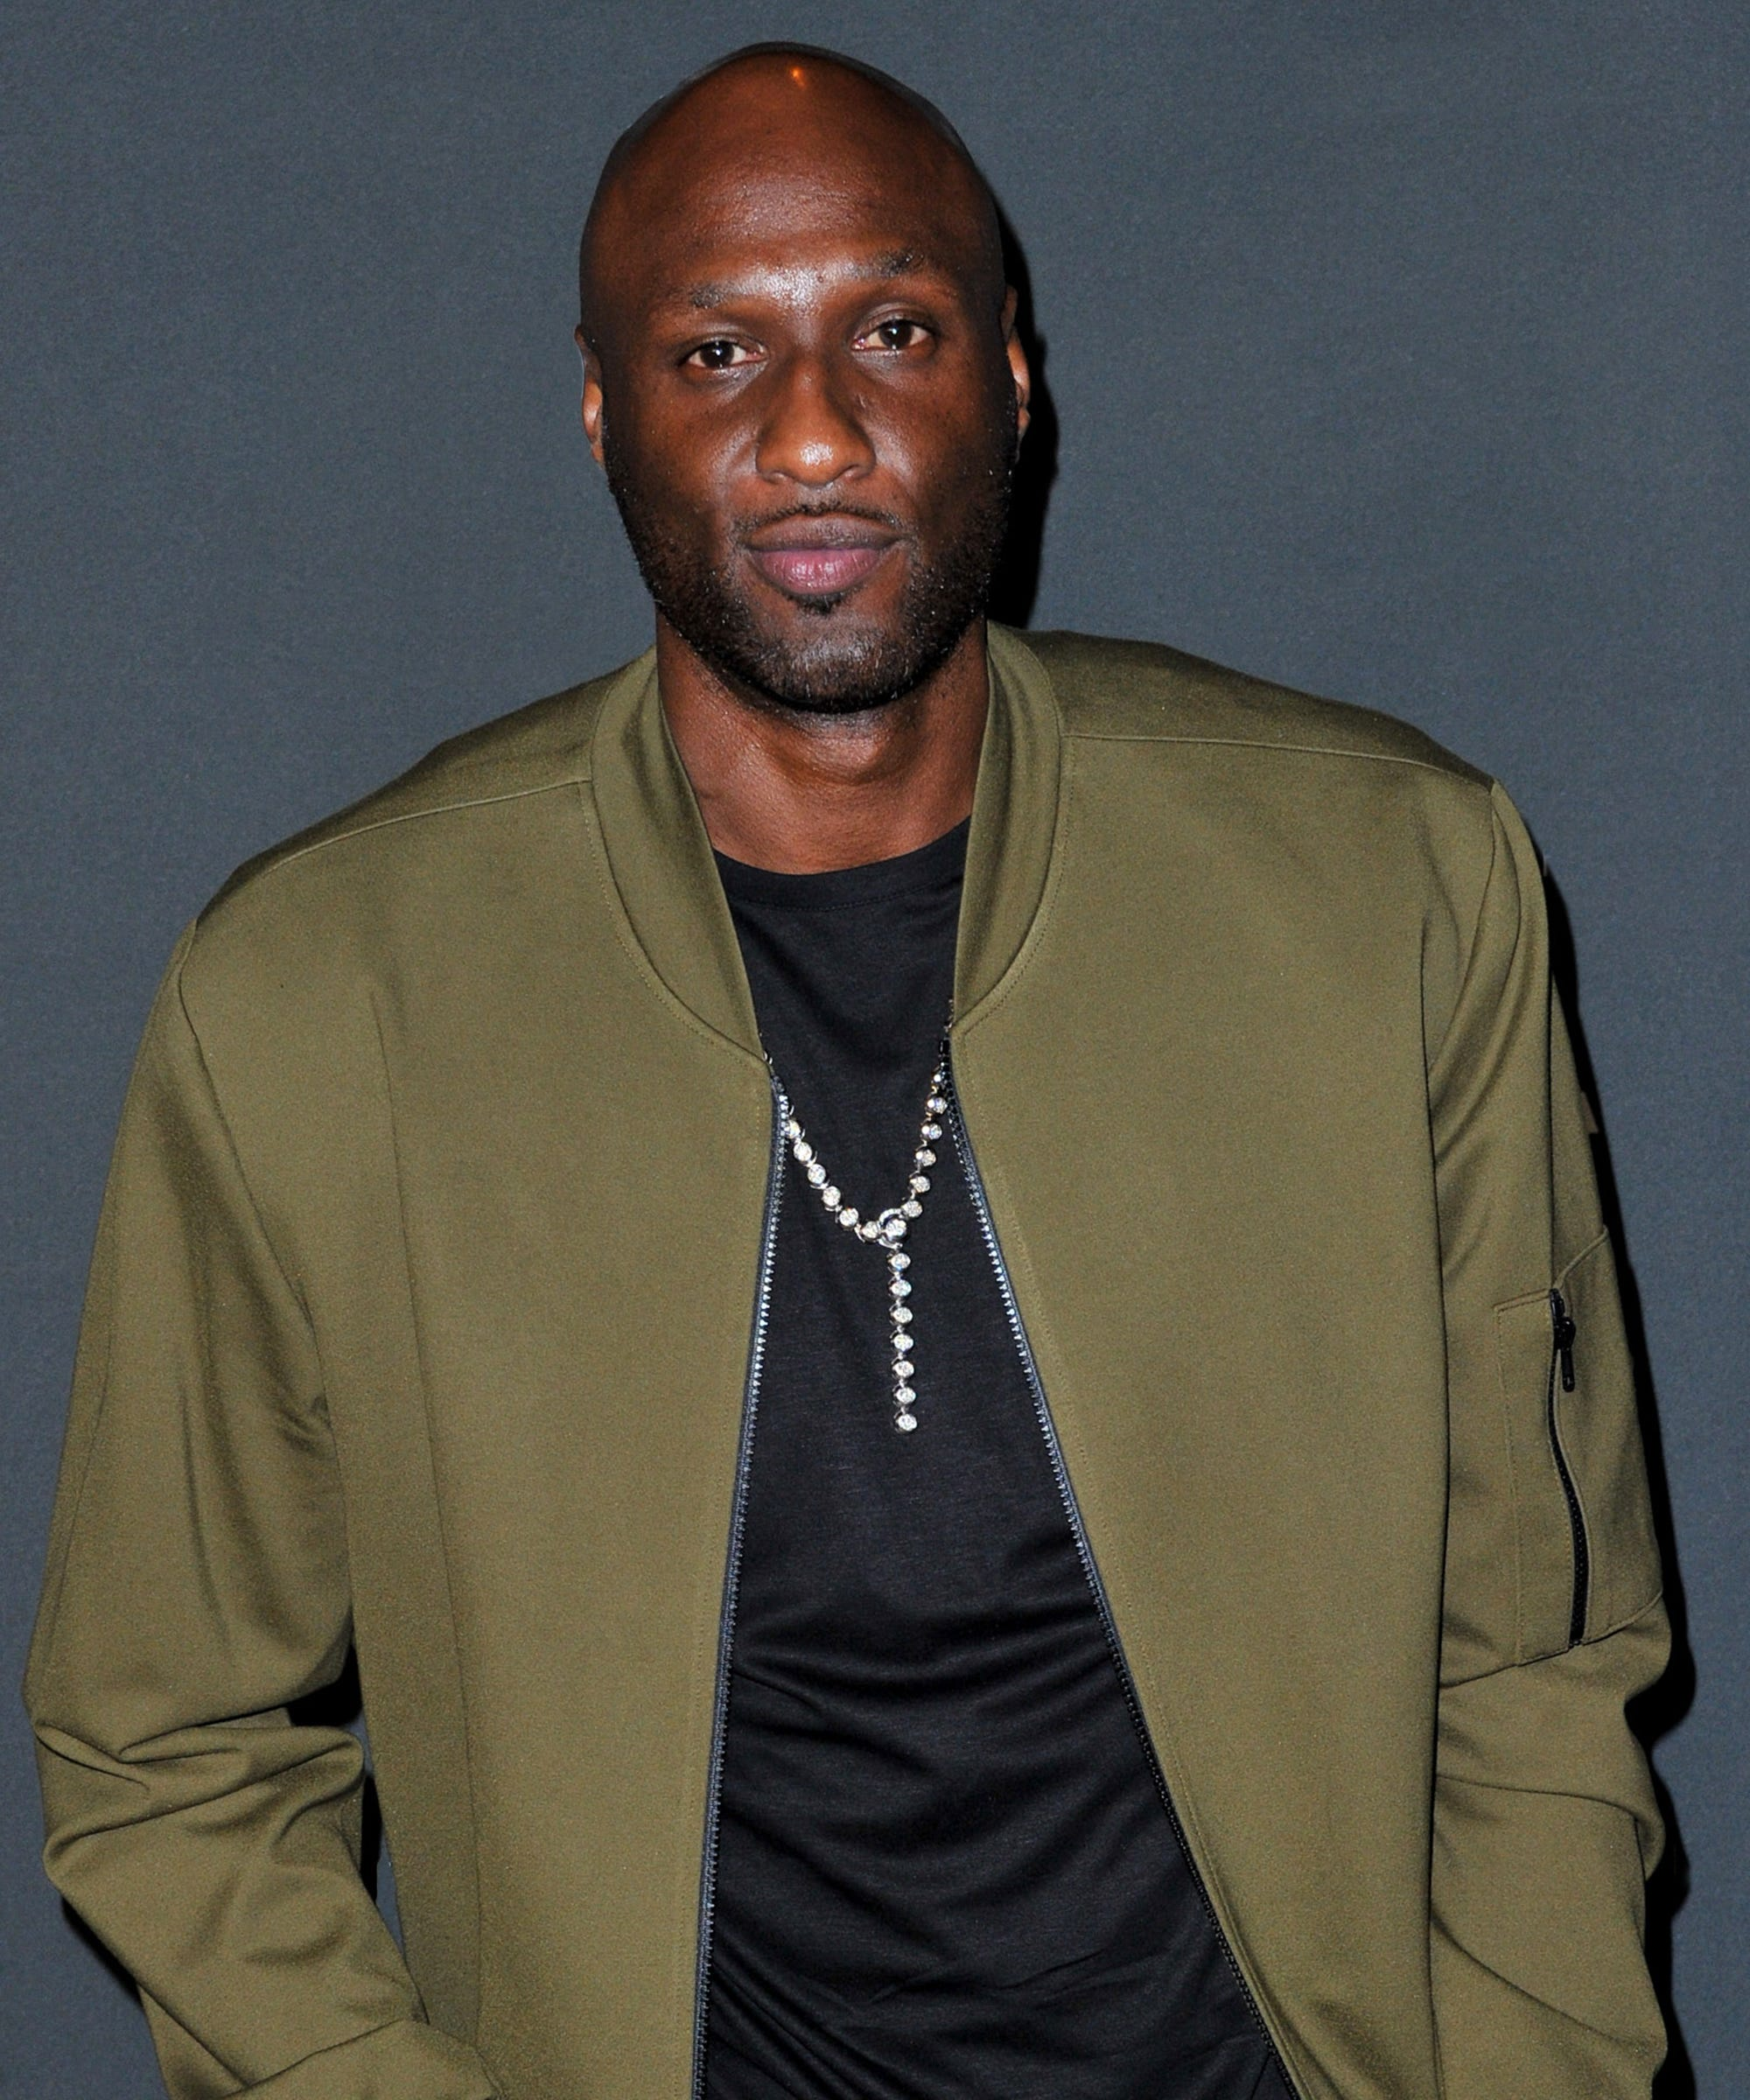 Lamar Odom Opens Up About His Sex Addiction And Sleeping With 2,000 Women